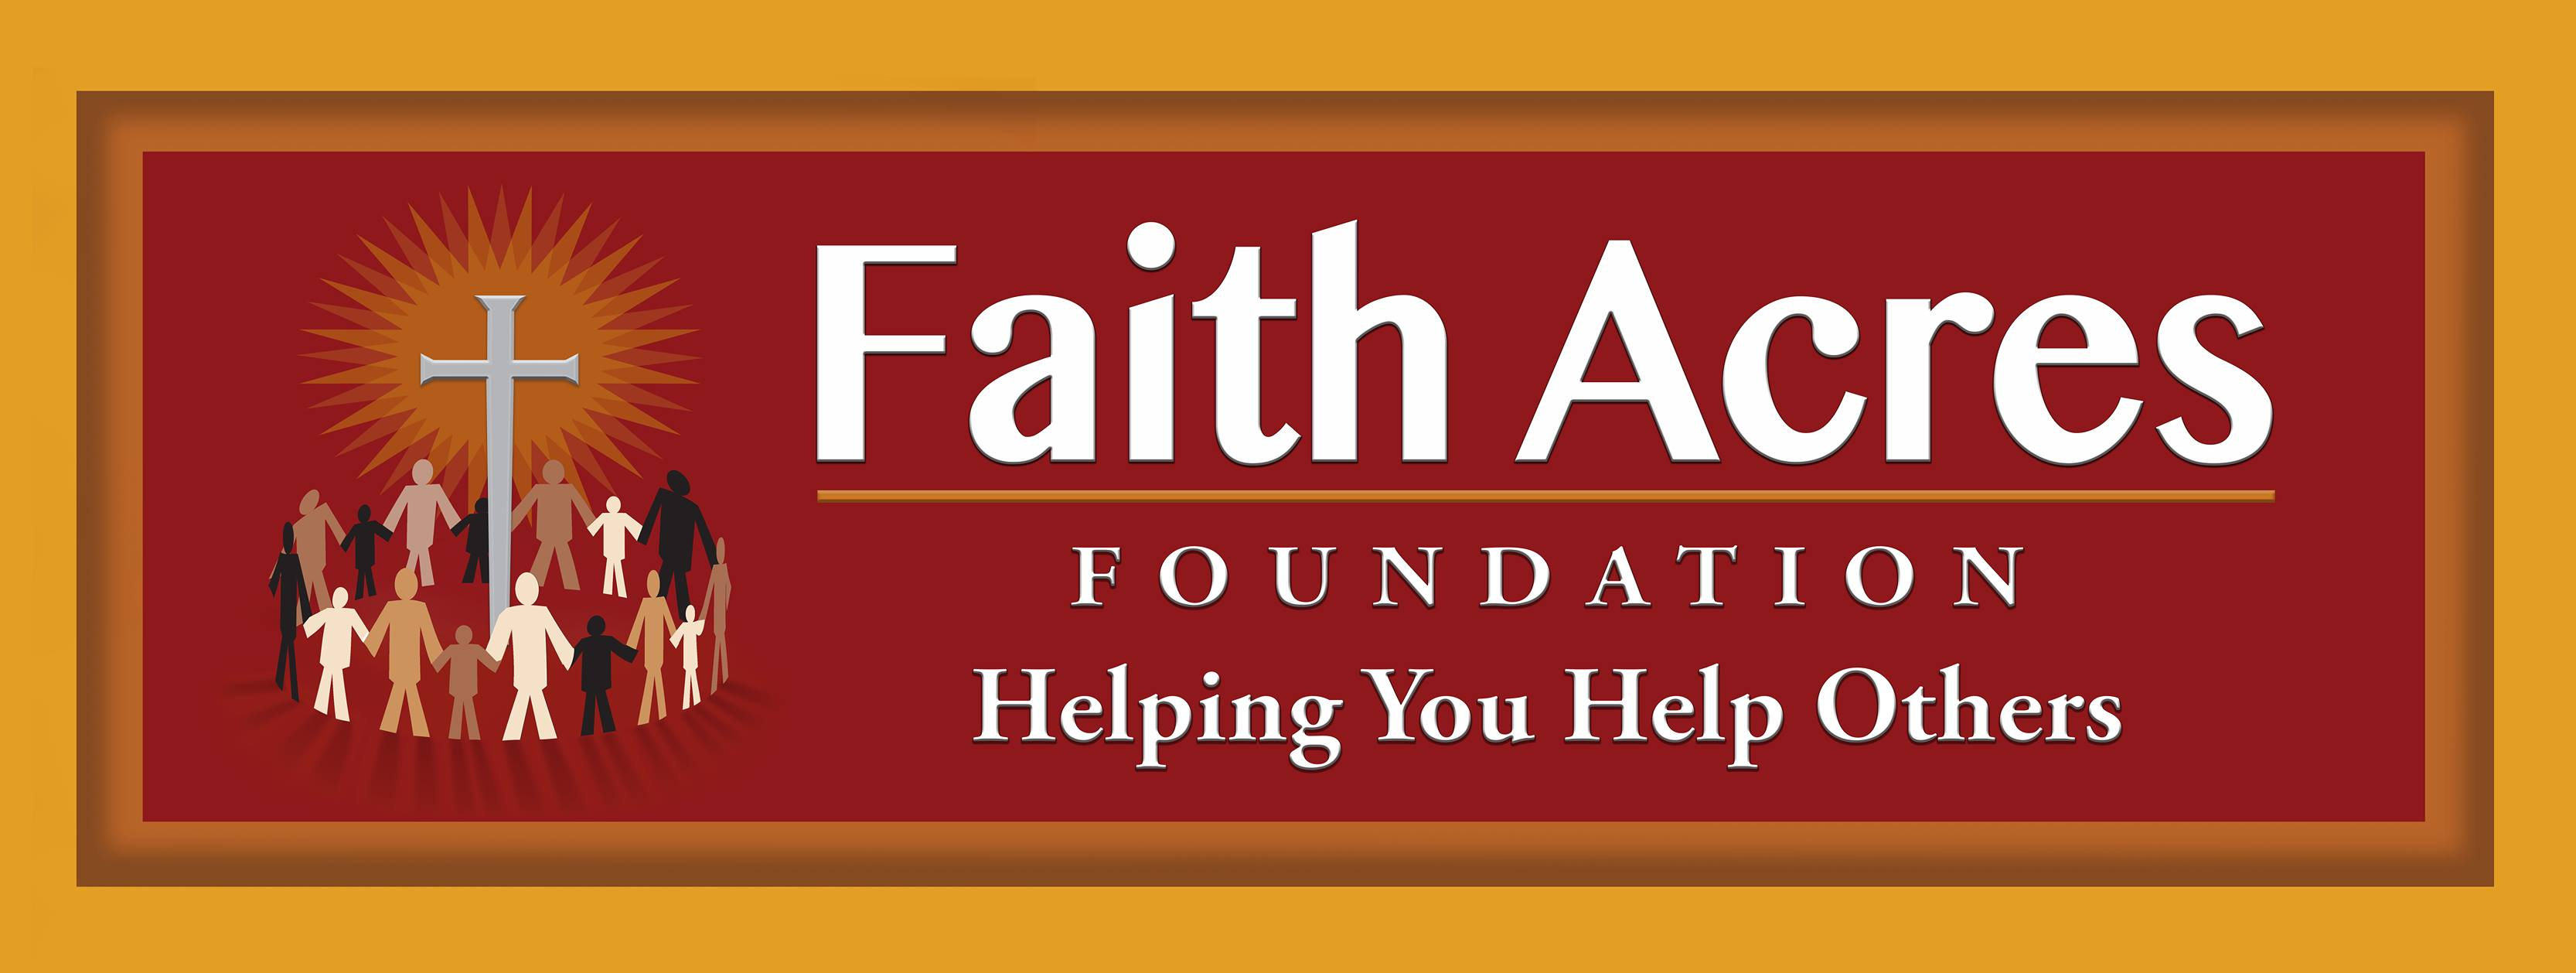 Faith Acres Foundation Food Pantry